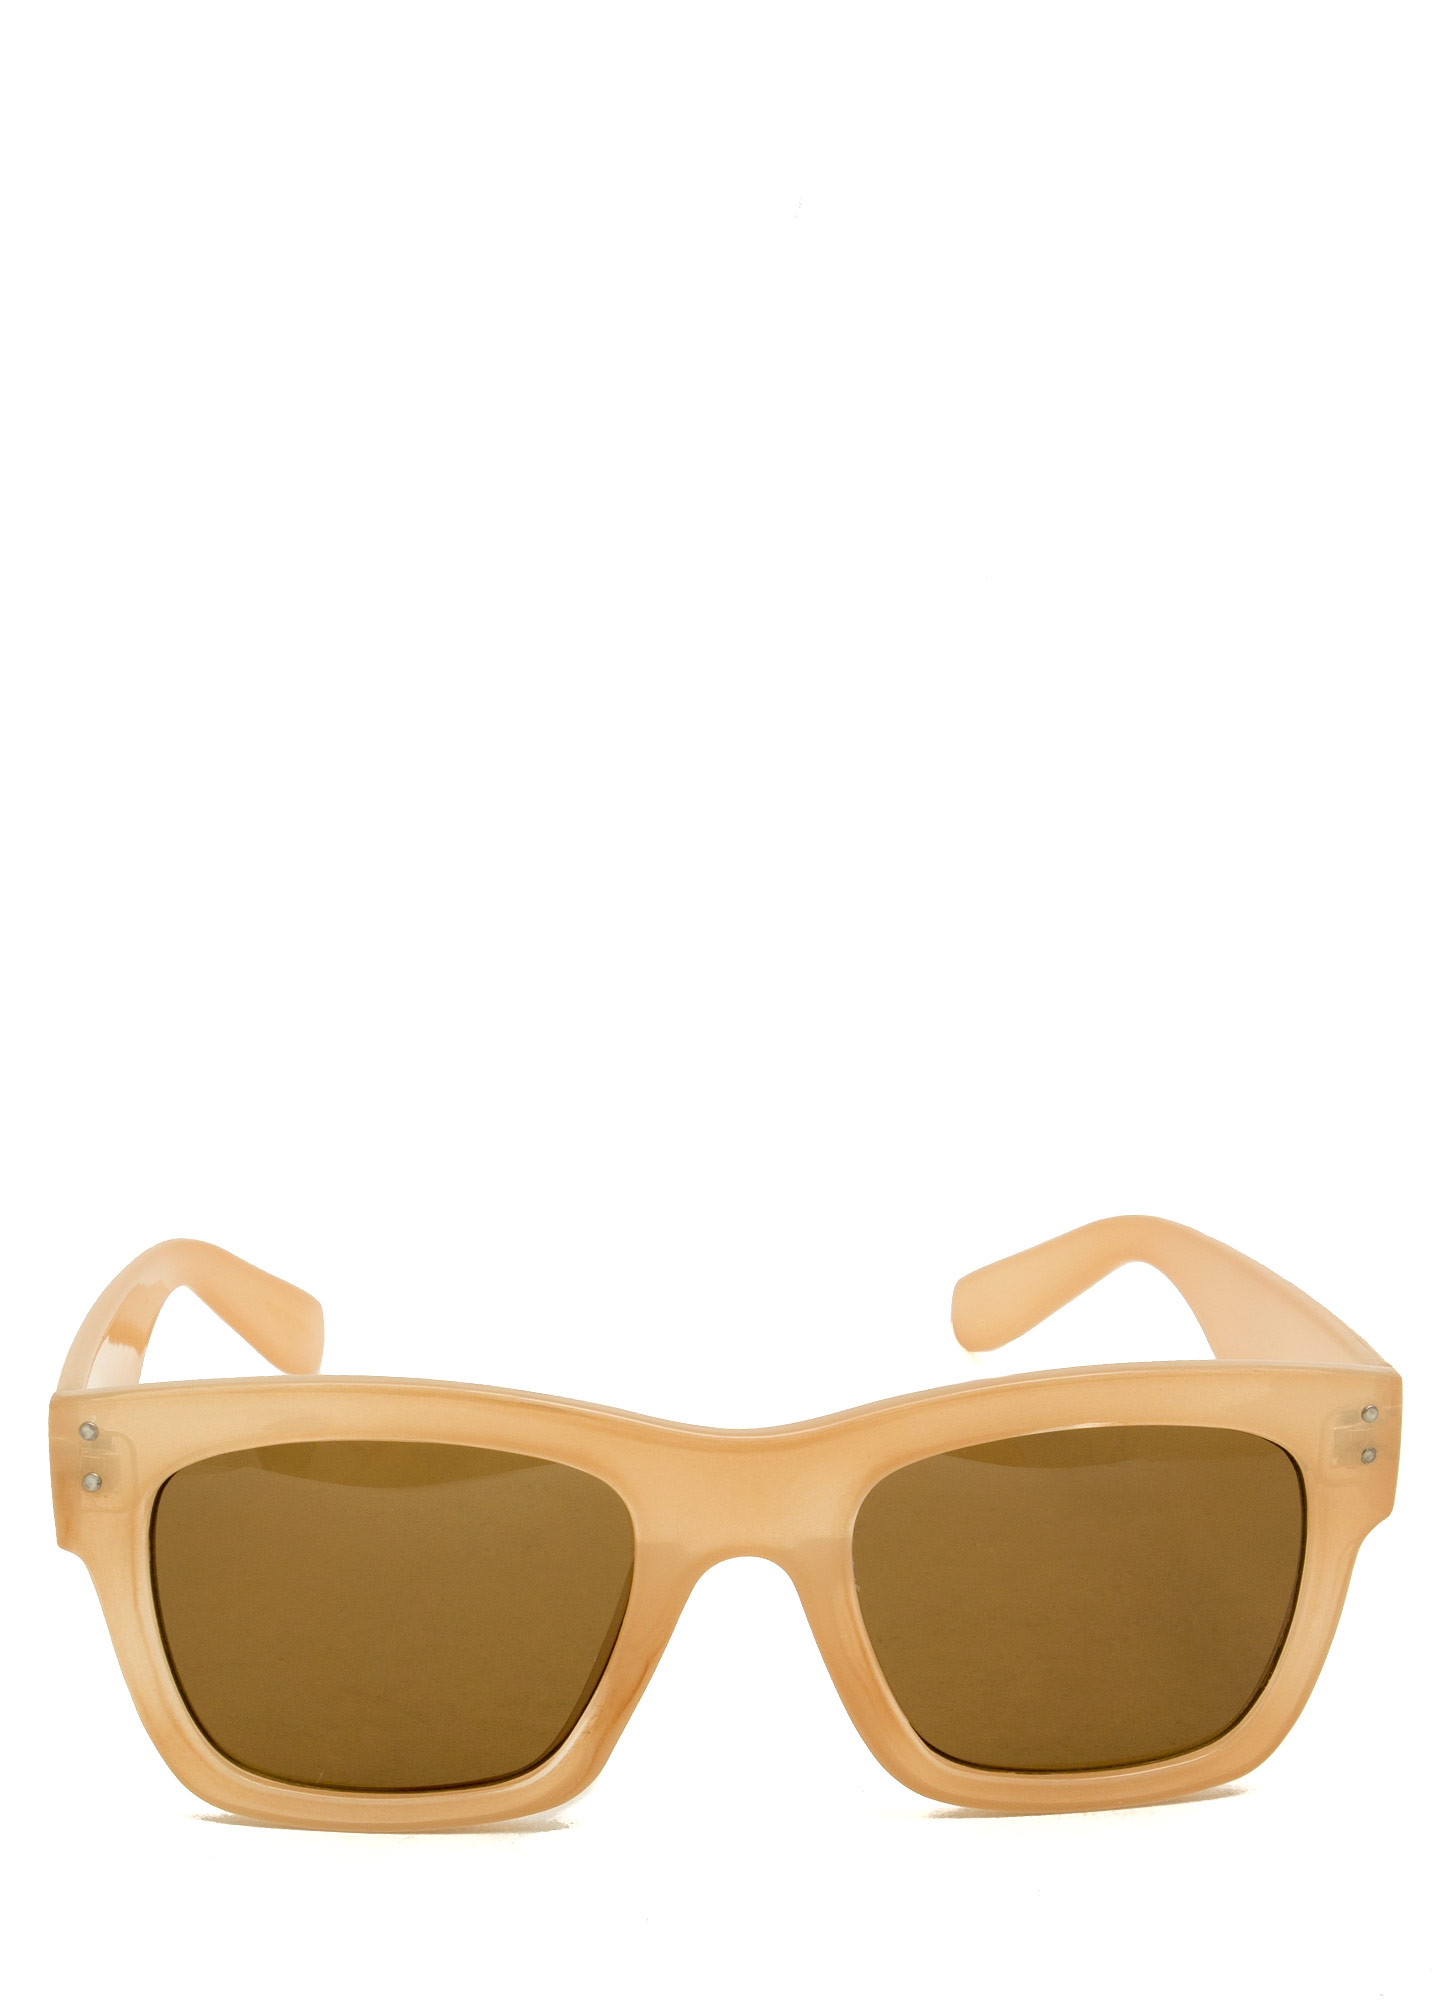 Retro Square Sunglasses BEIGE